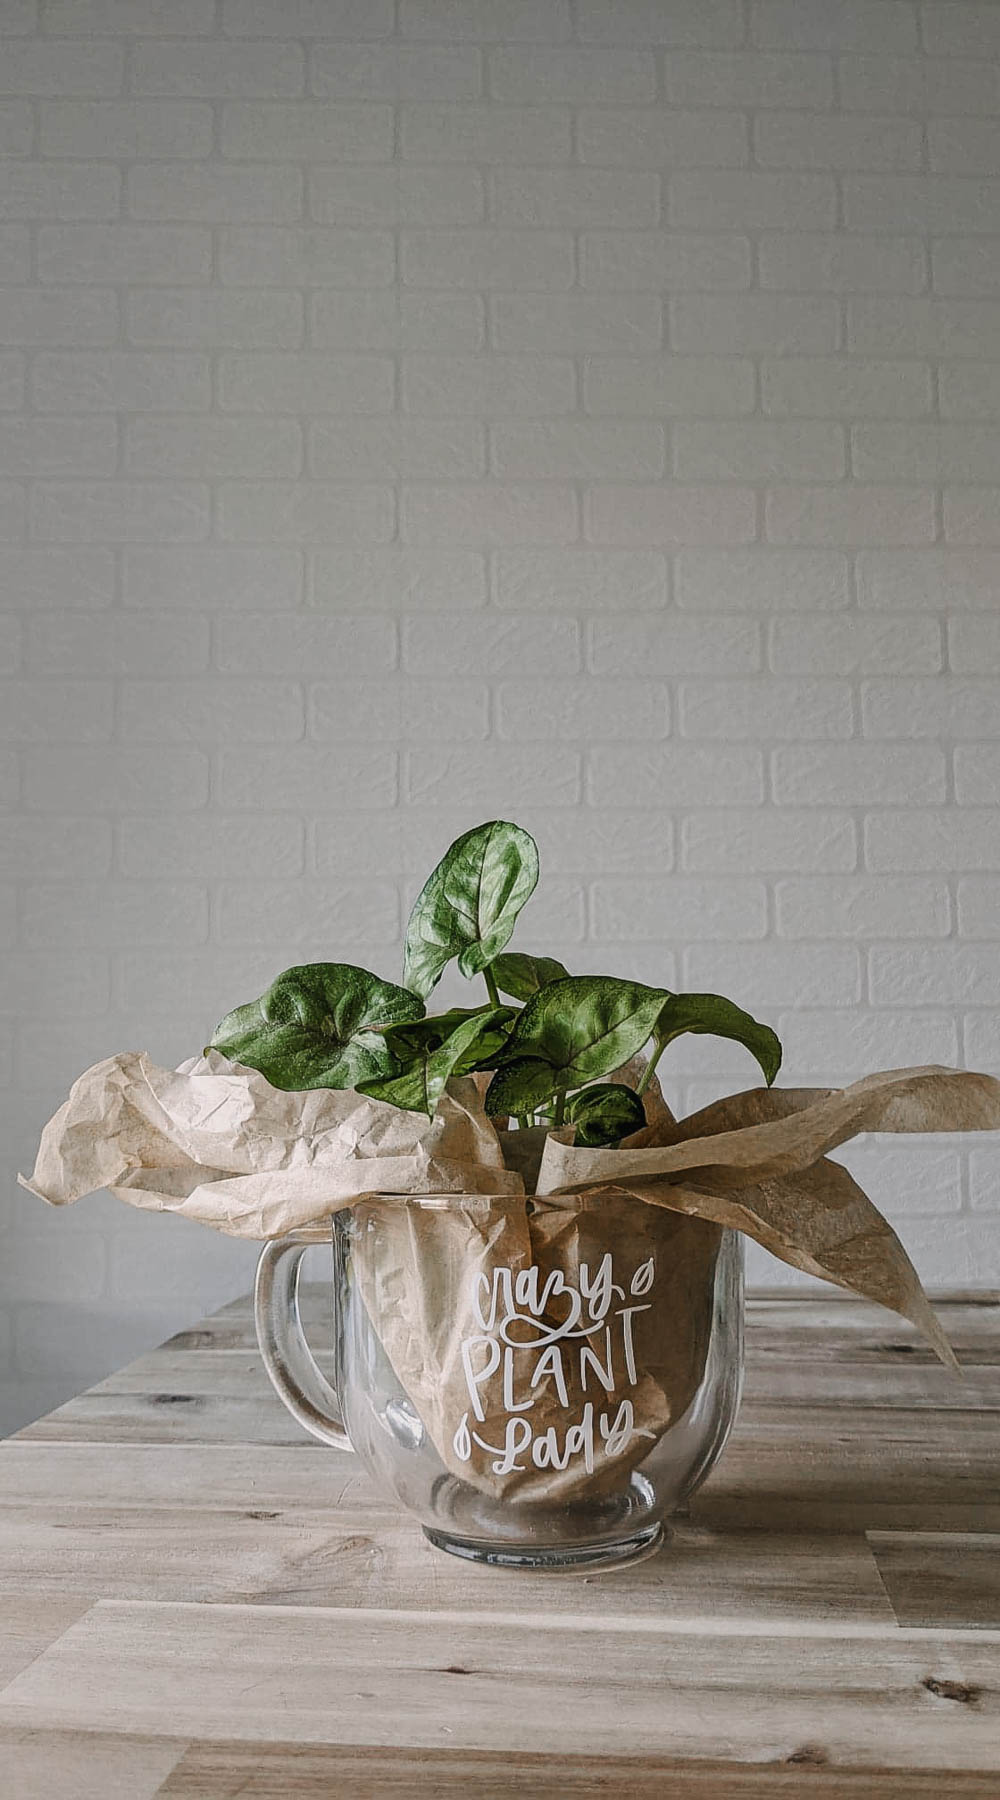 Cute gift idea for a plant lover